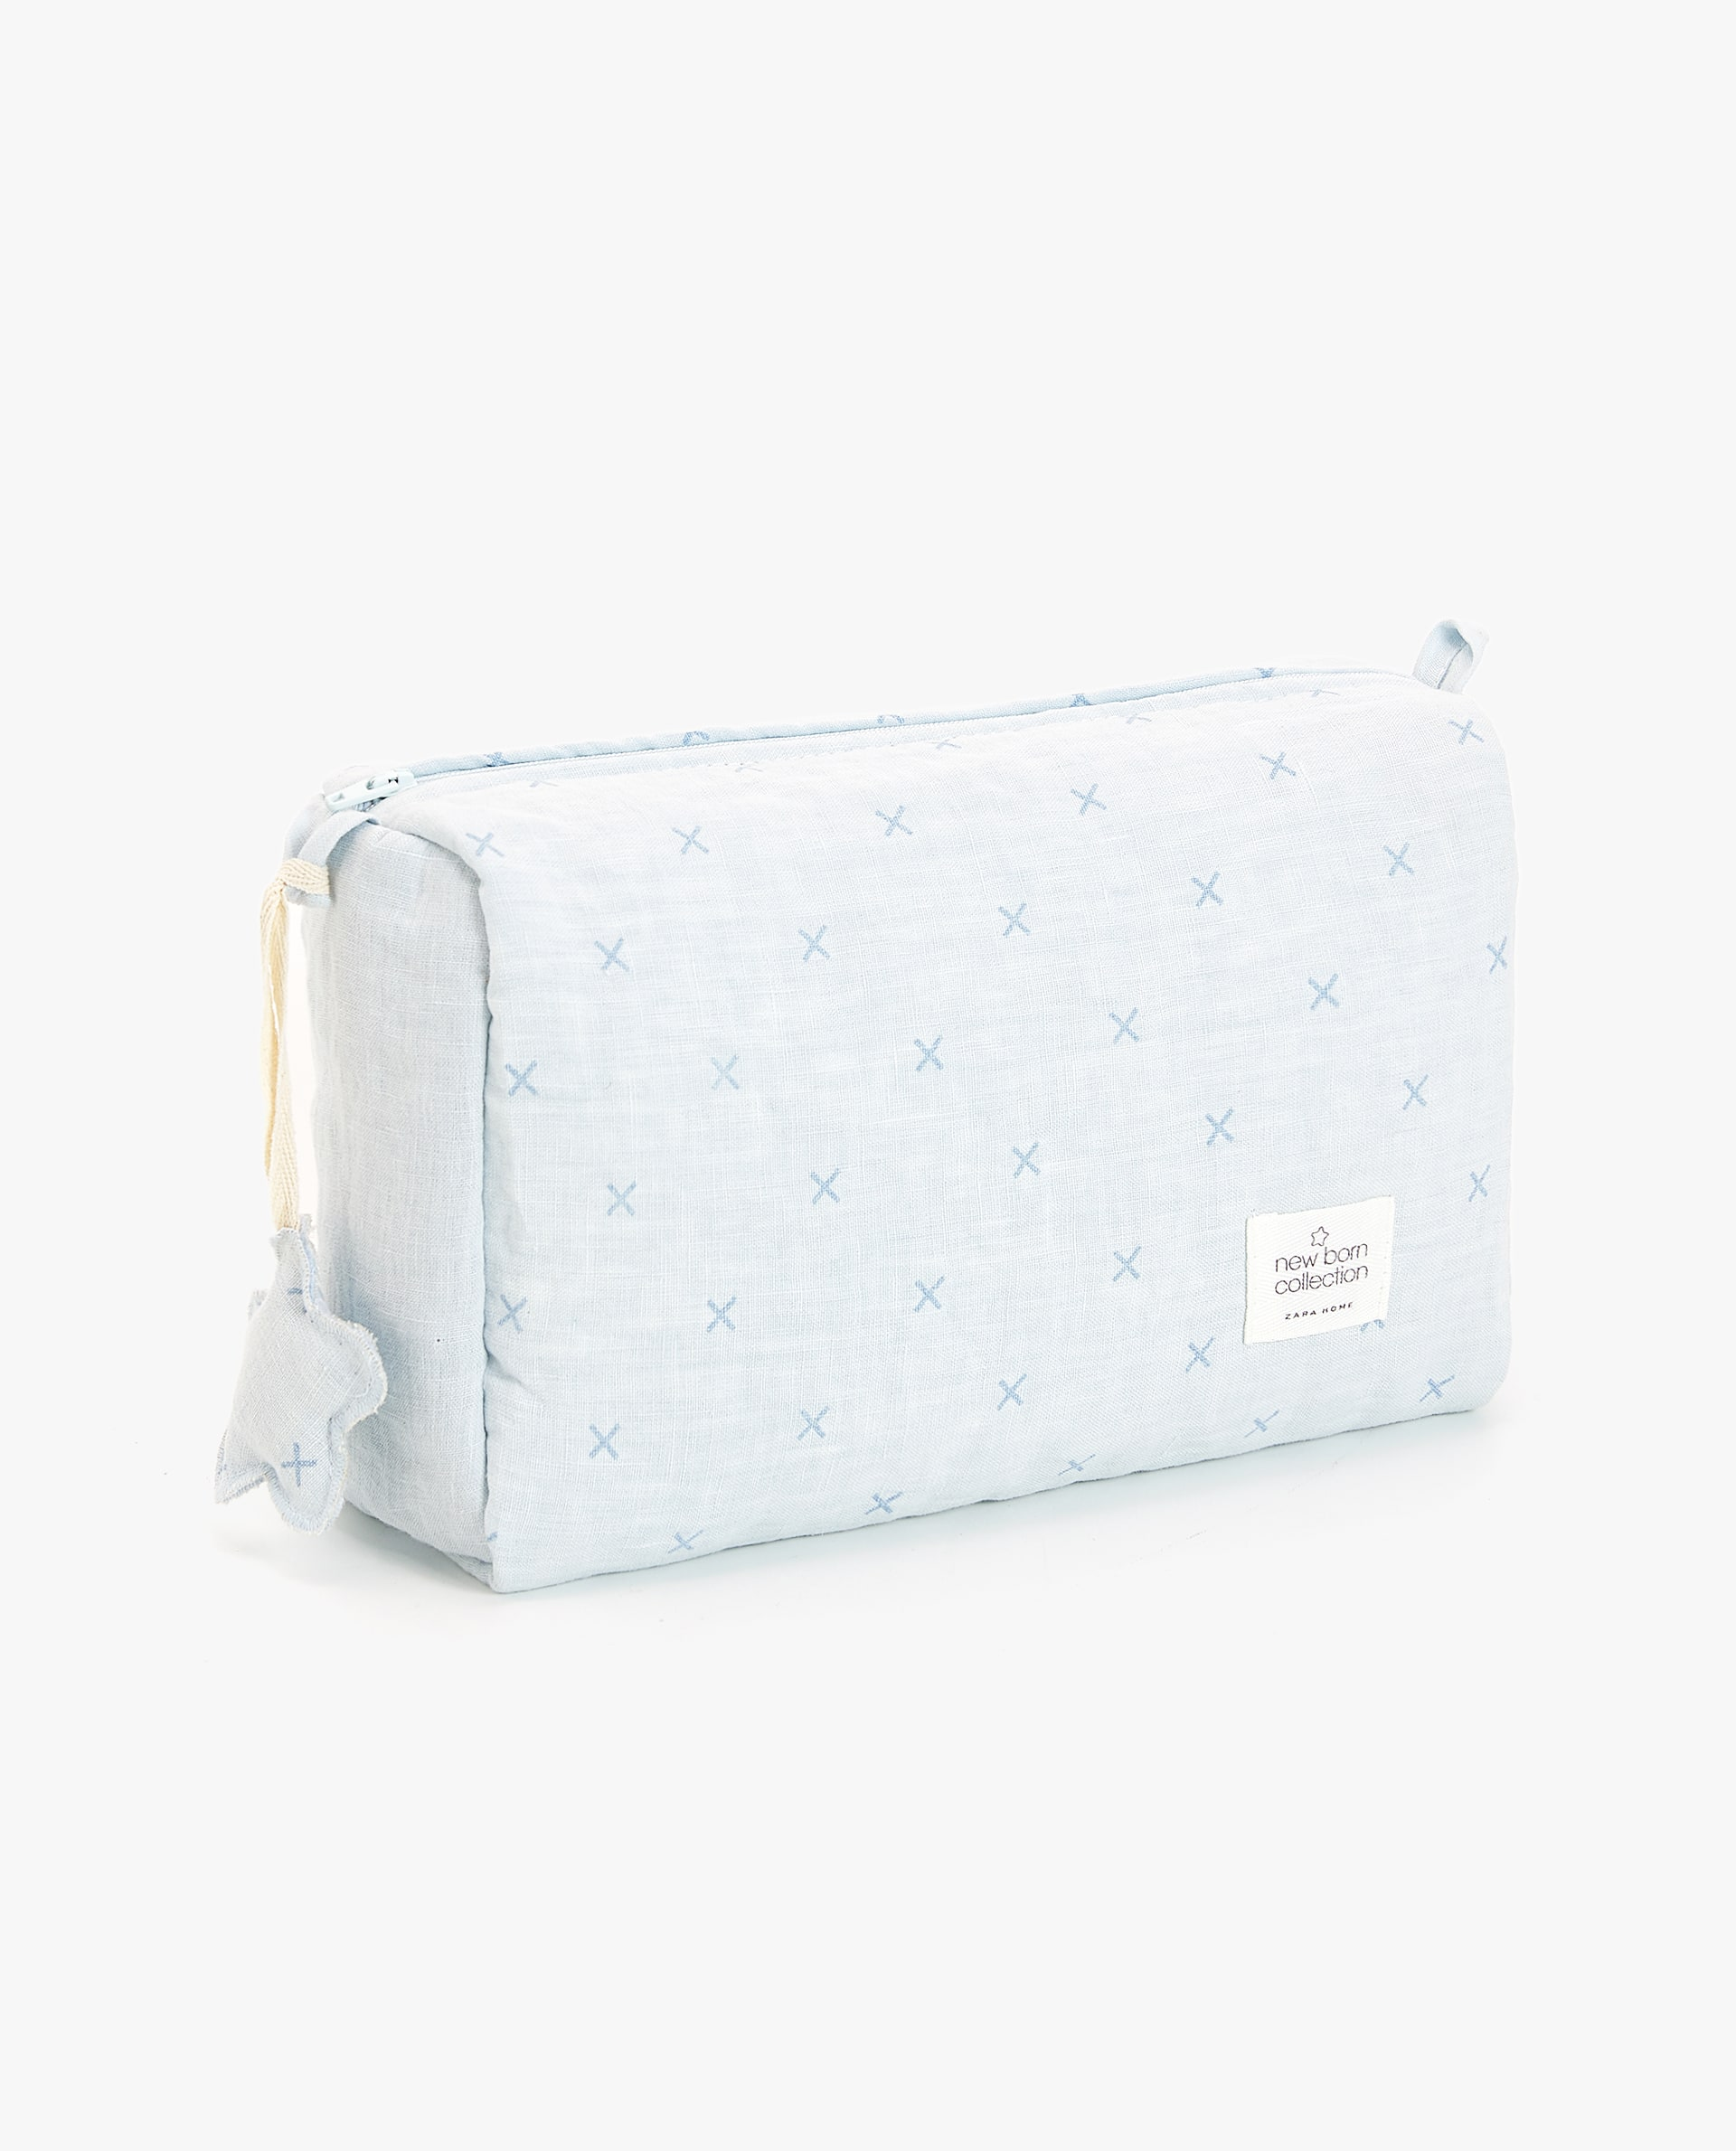 b93627d2c7 PRINTED LINEN TOILETRY BAG - TOILETRY BAGS AND CHANGING MATS ...